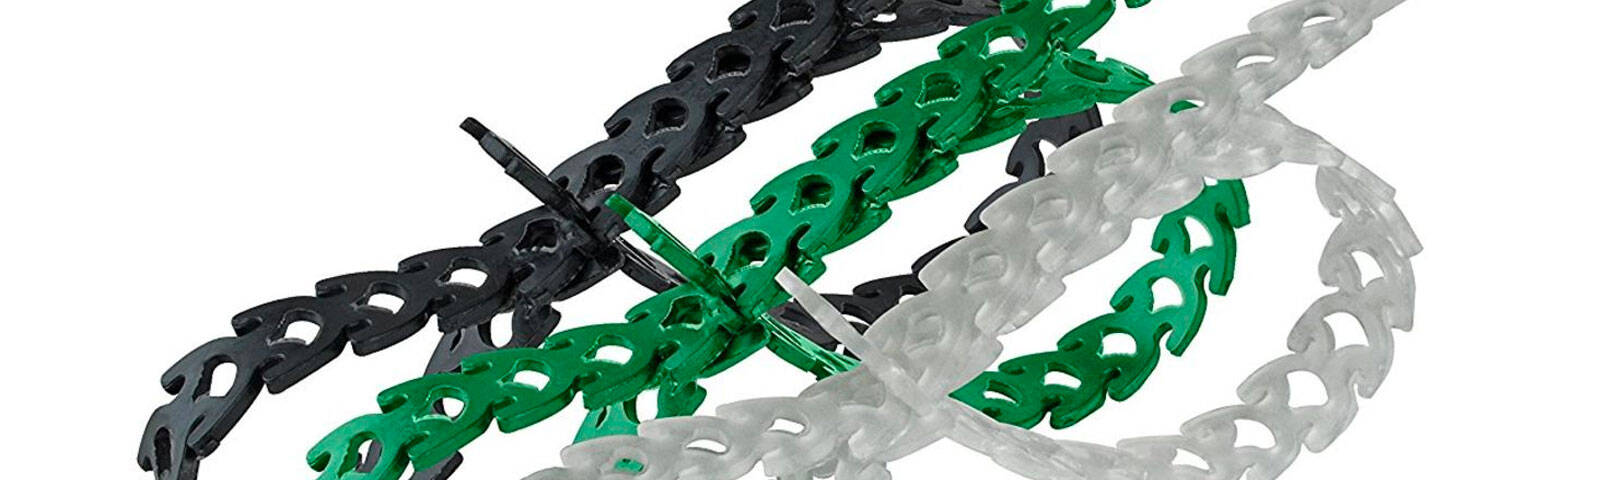 Eco-friendly cable ties